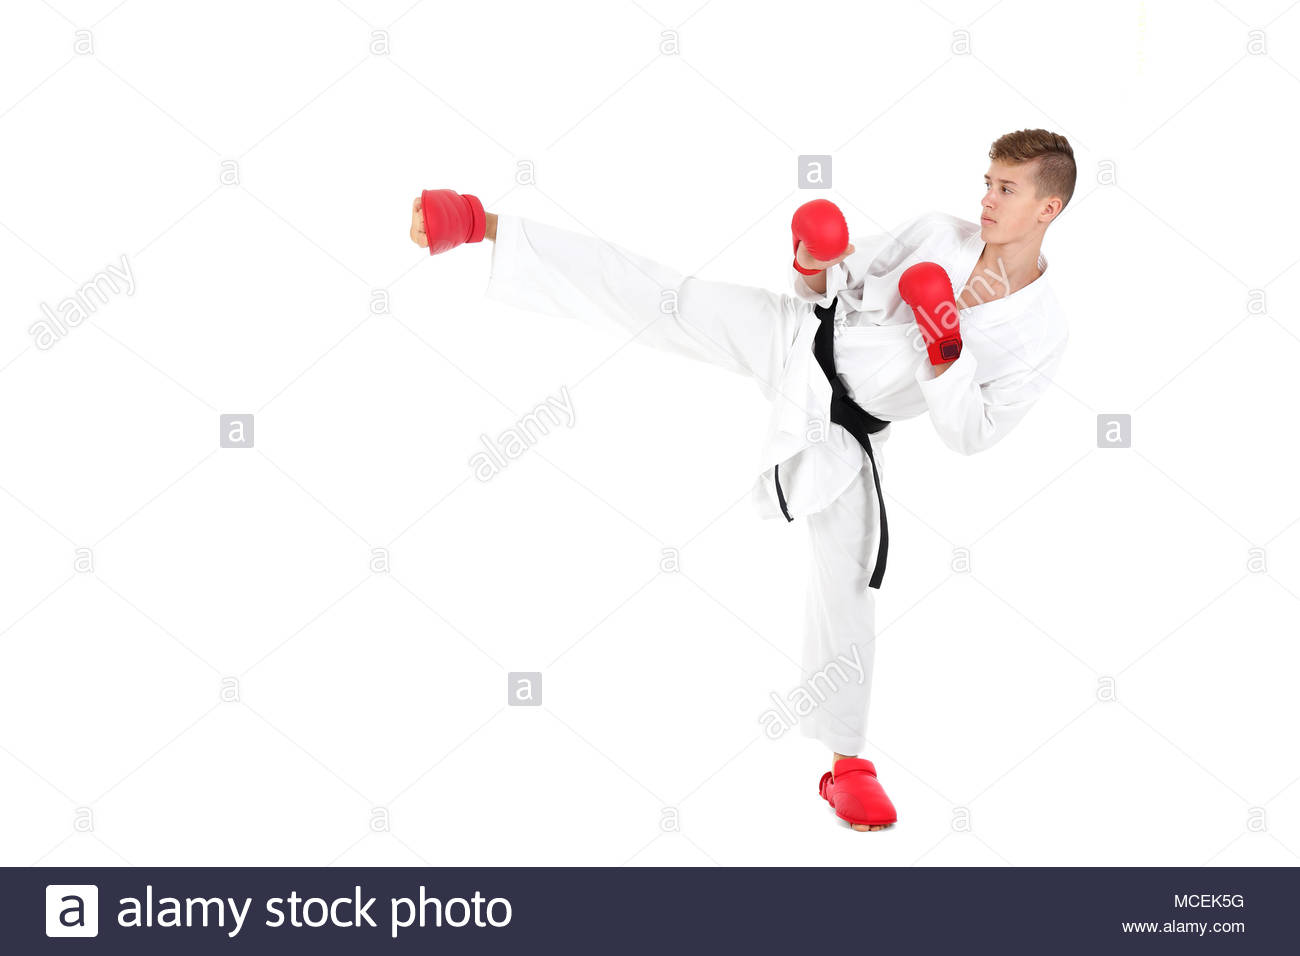 Young karate fighter in front of white background - Stock Image